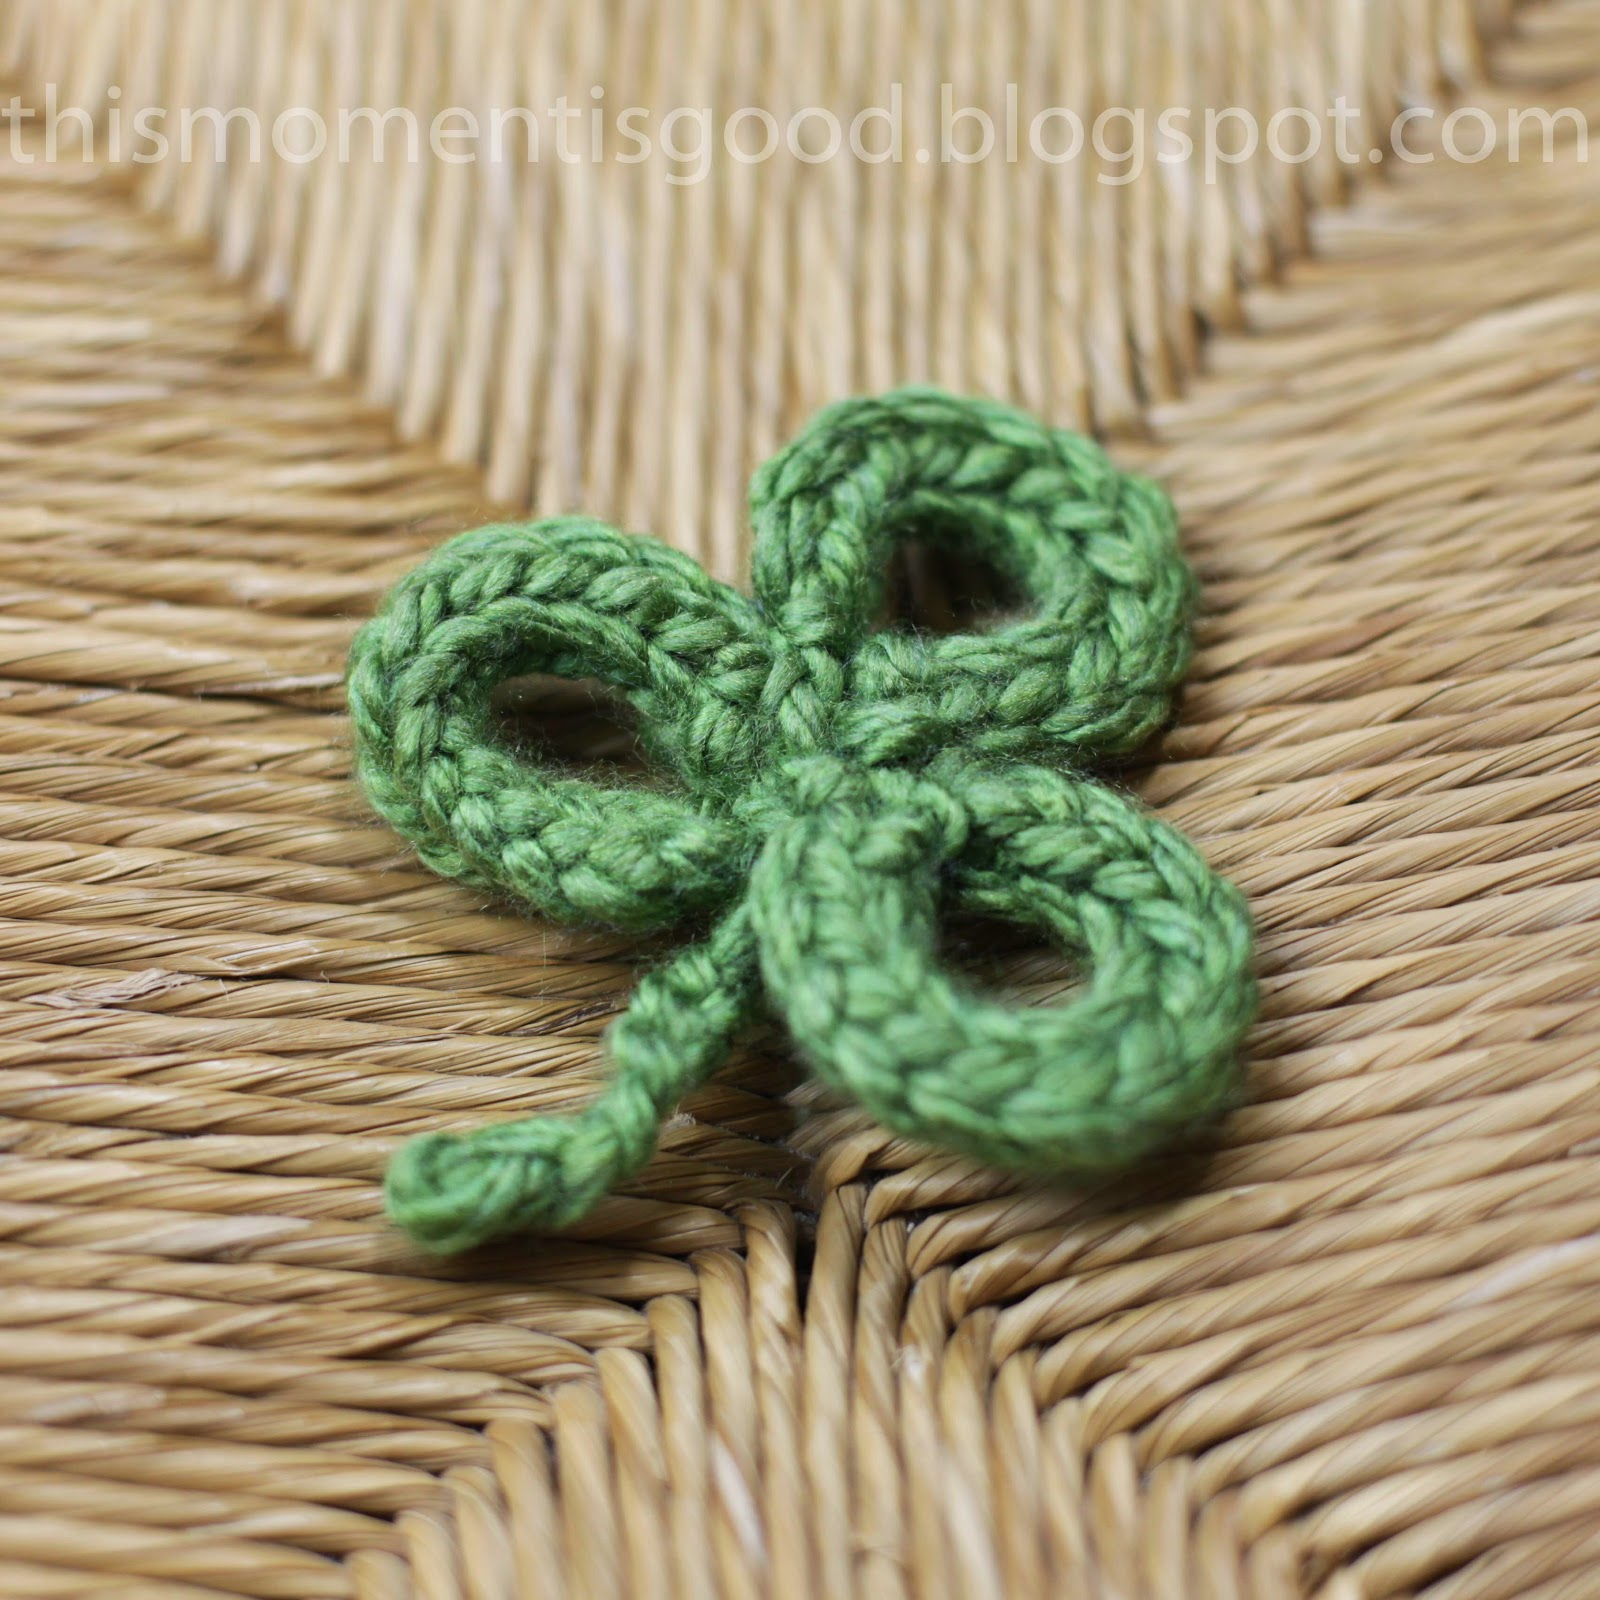 Loom Knitting by This Moment is Good!: LOOM KNIT SHAMROCK/3 LEAF CLOVER PATTERN